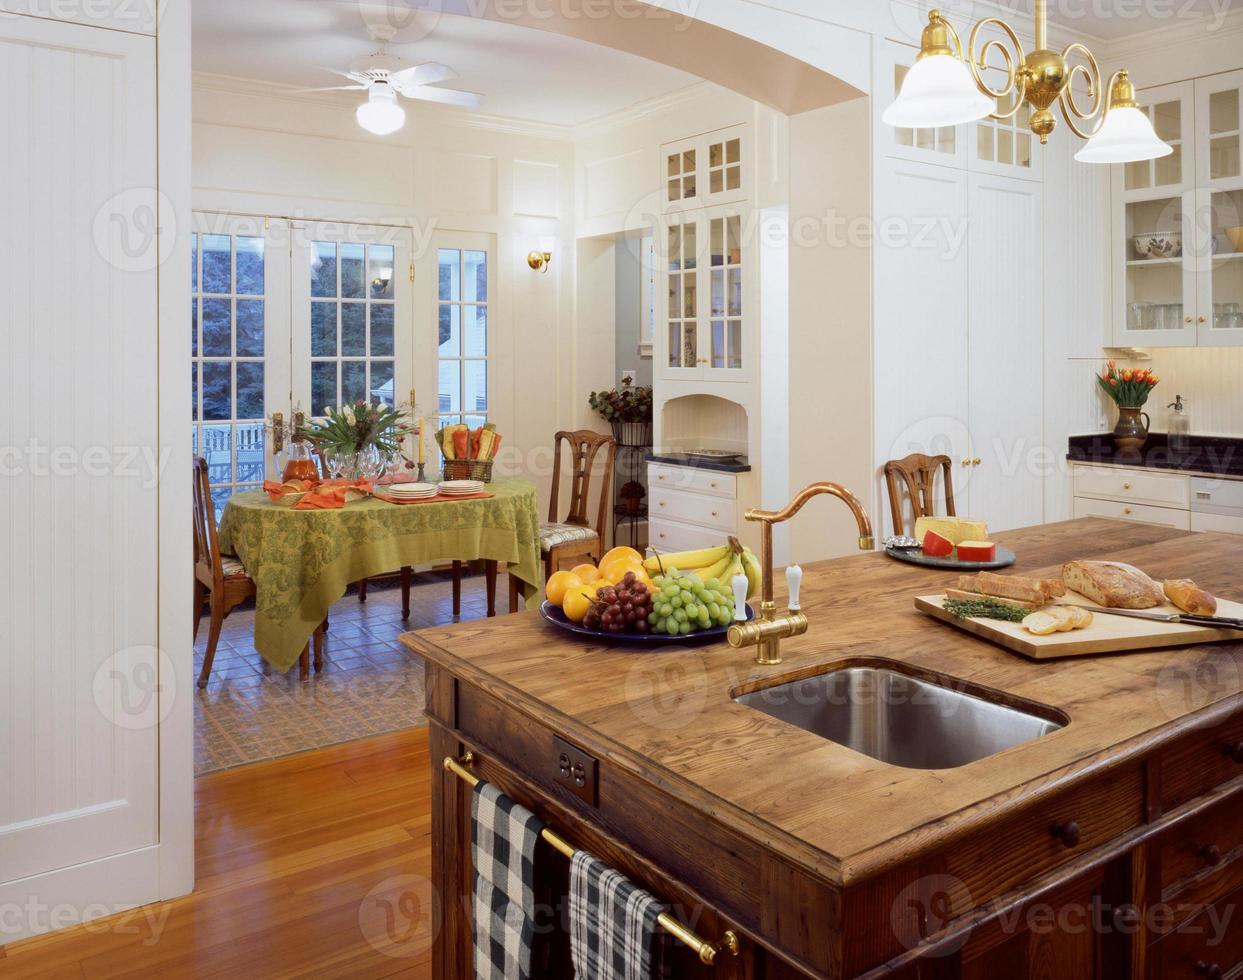 Large Kitchen in Home photo